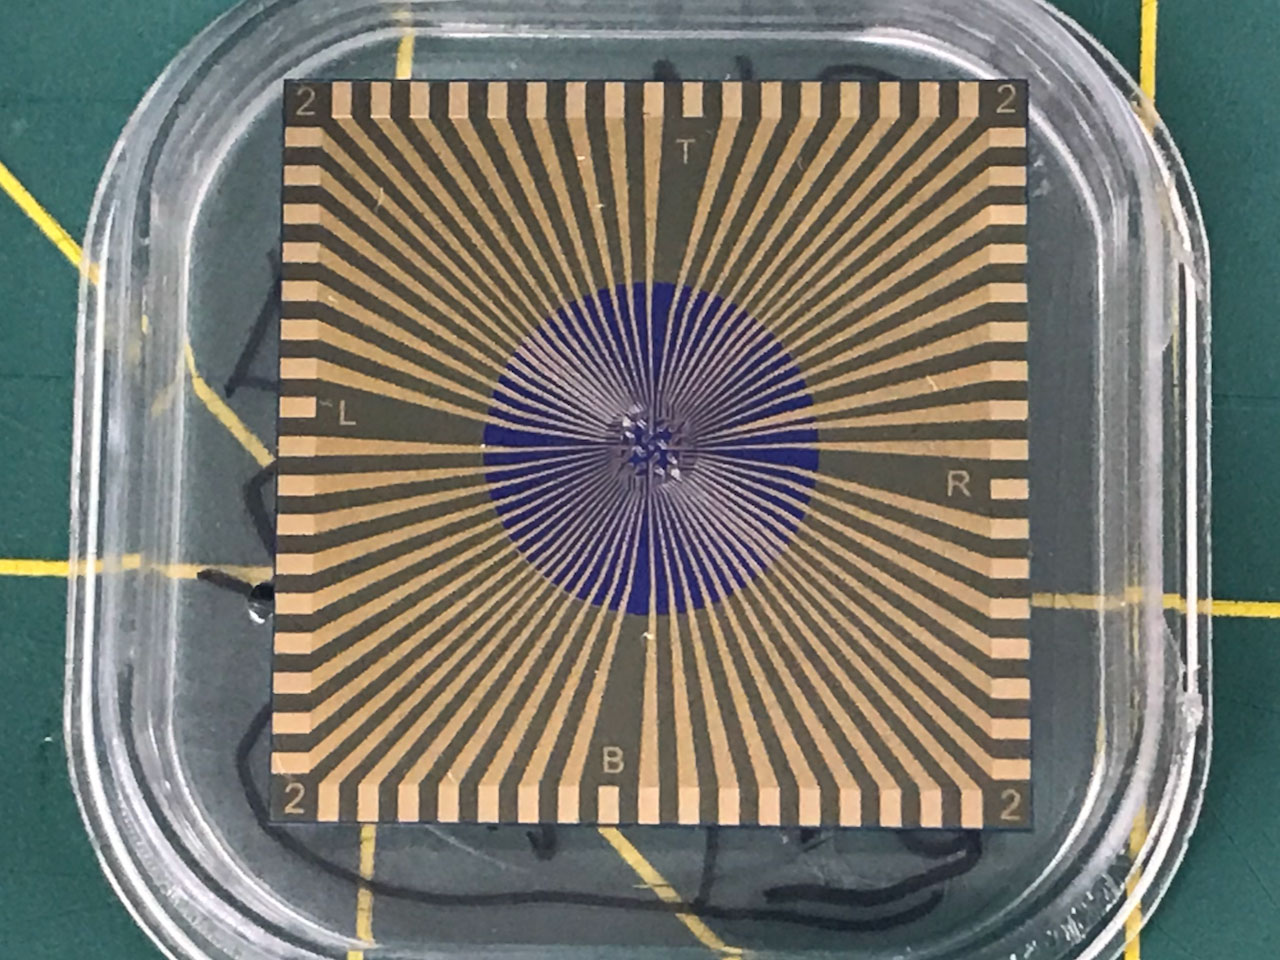 Example of the covid-flu dual test sensor chip up close. The chip is square with a striped pattern on top.